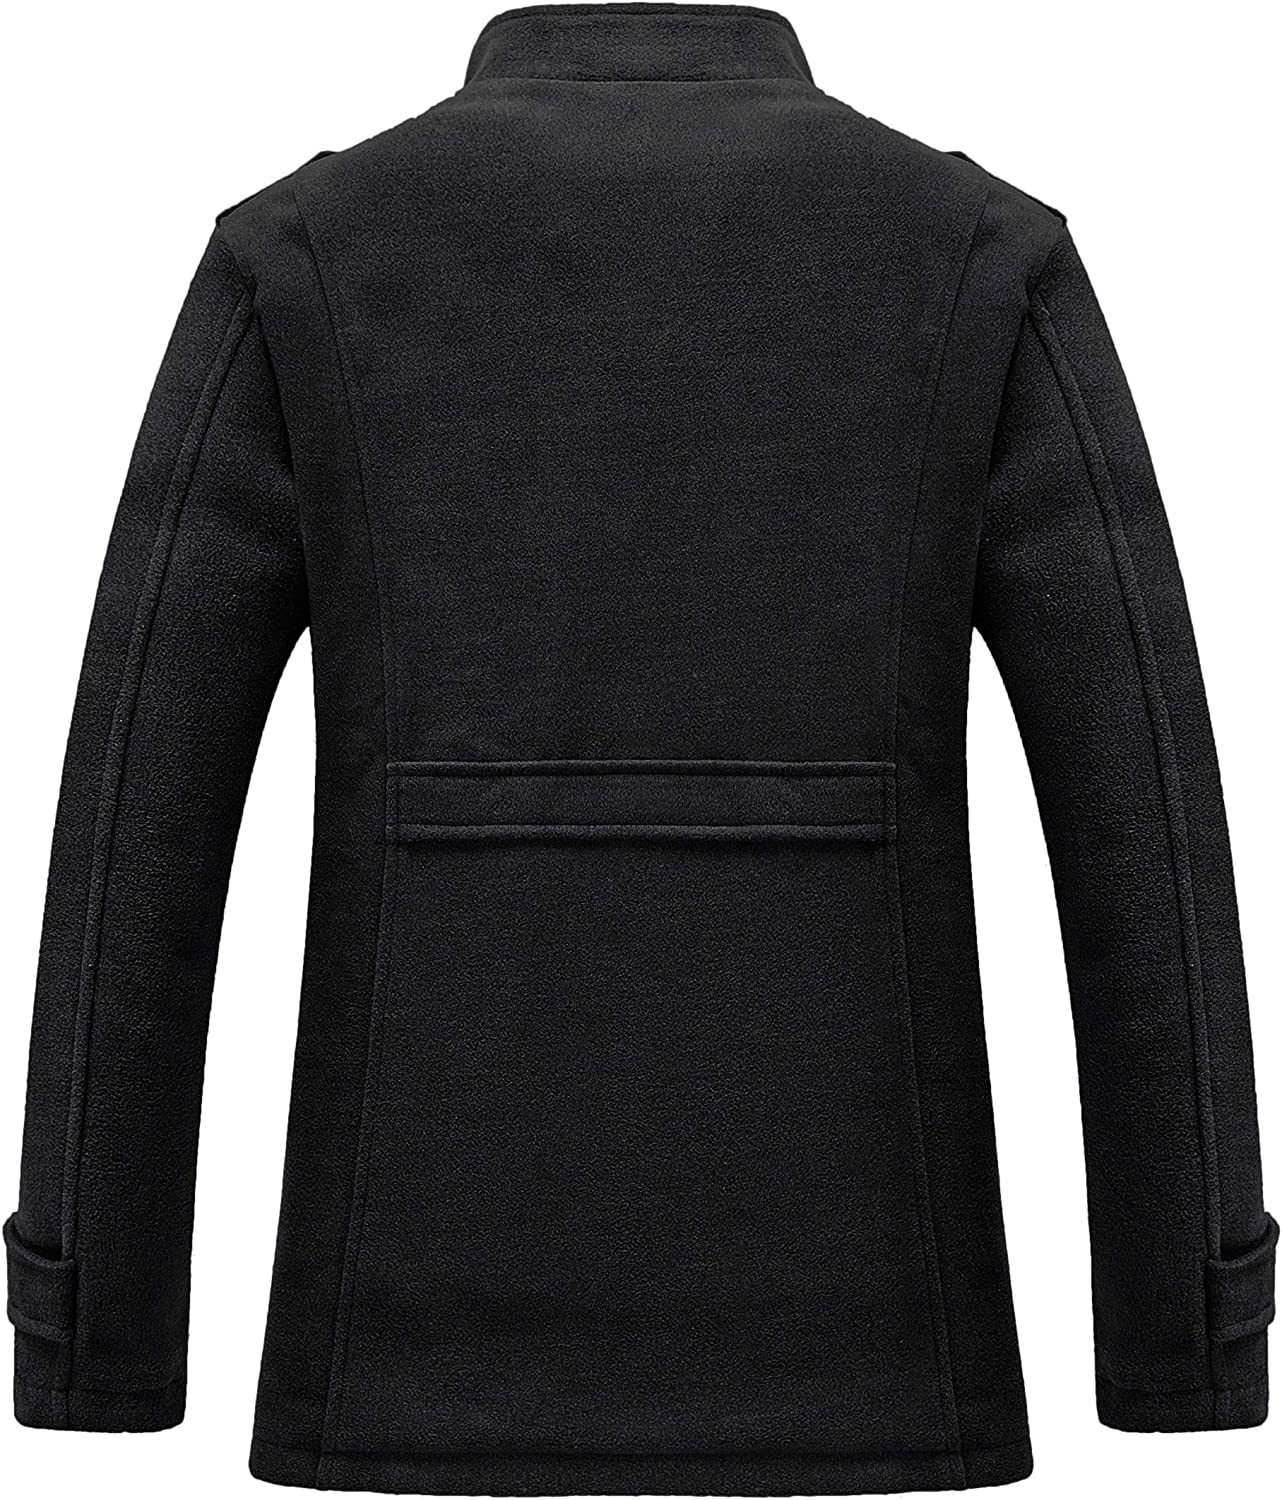 RongYue Mens Winter Wool Blend Jacket Warm Windproof Pea Coat with Faux Fur Lined